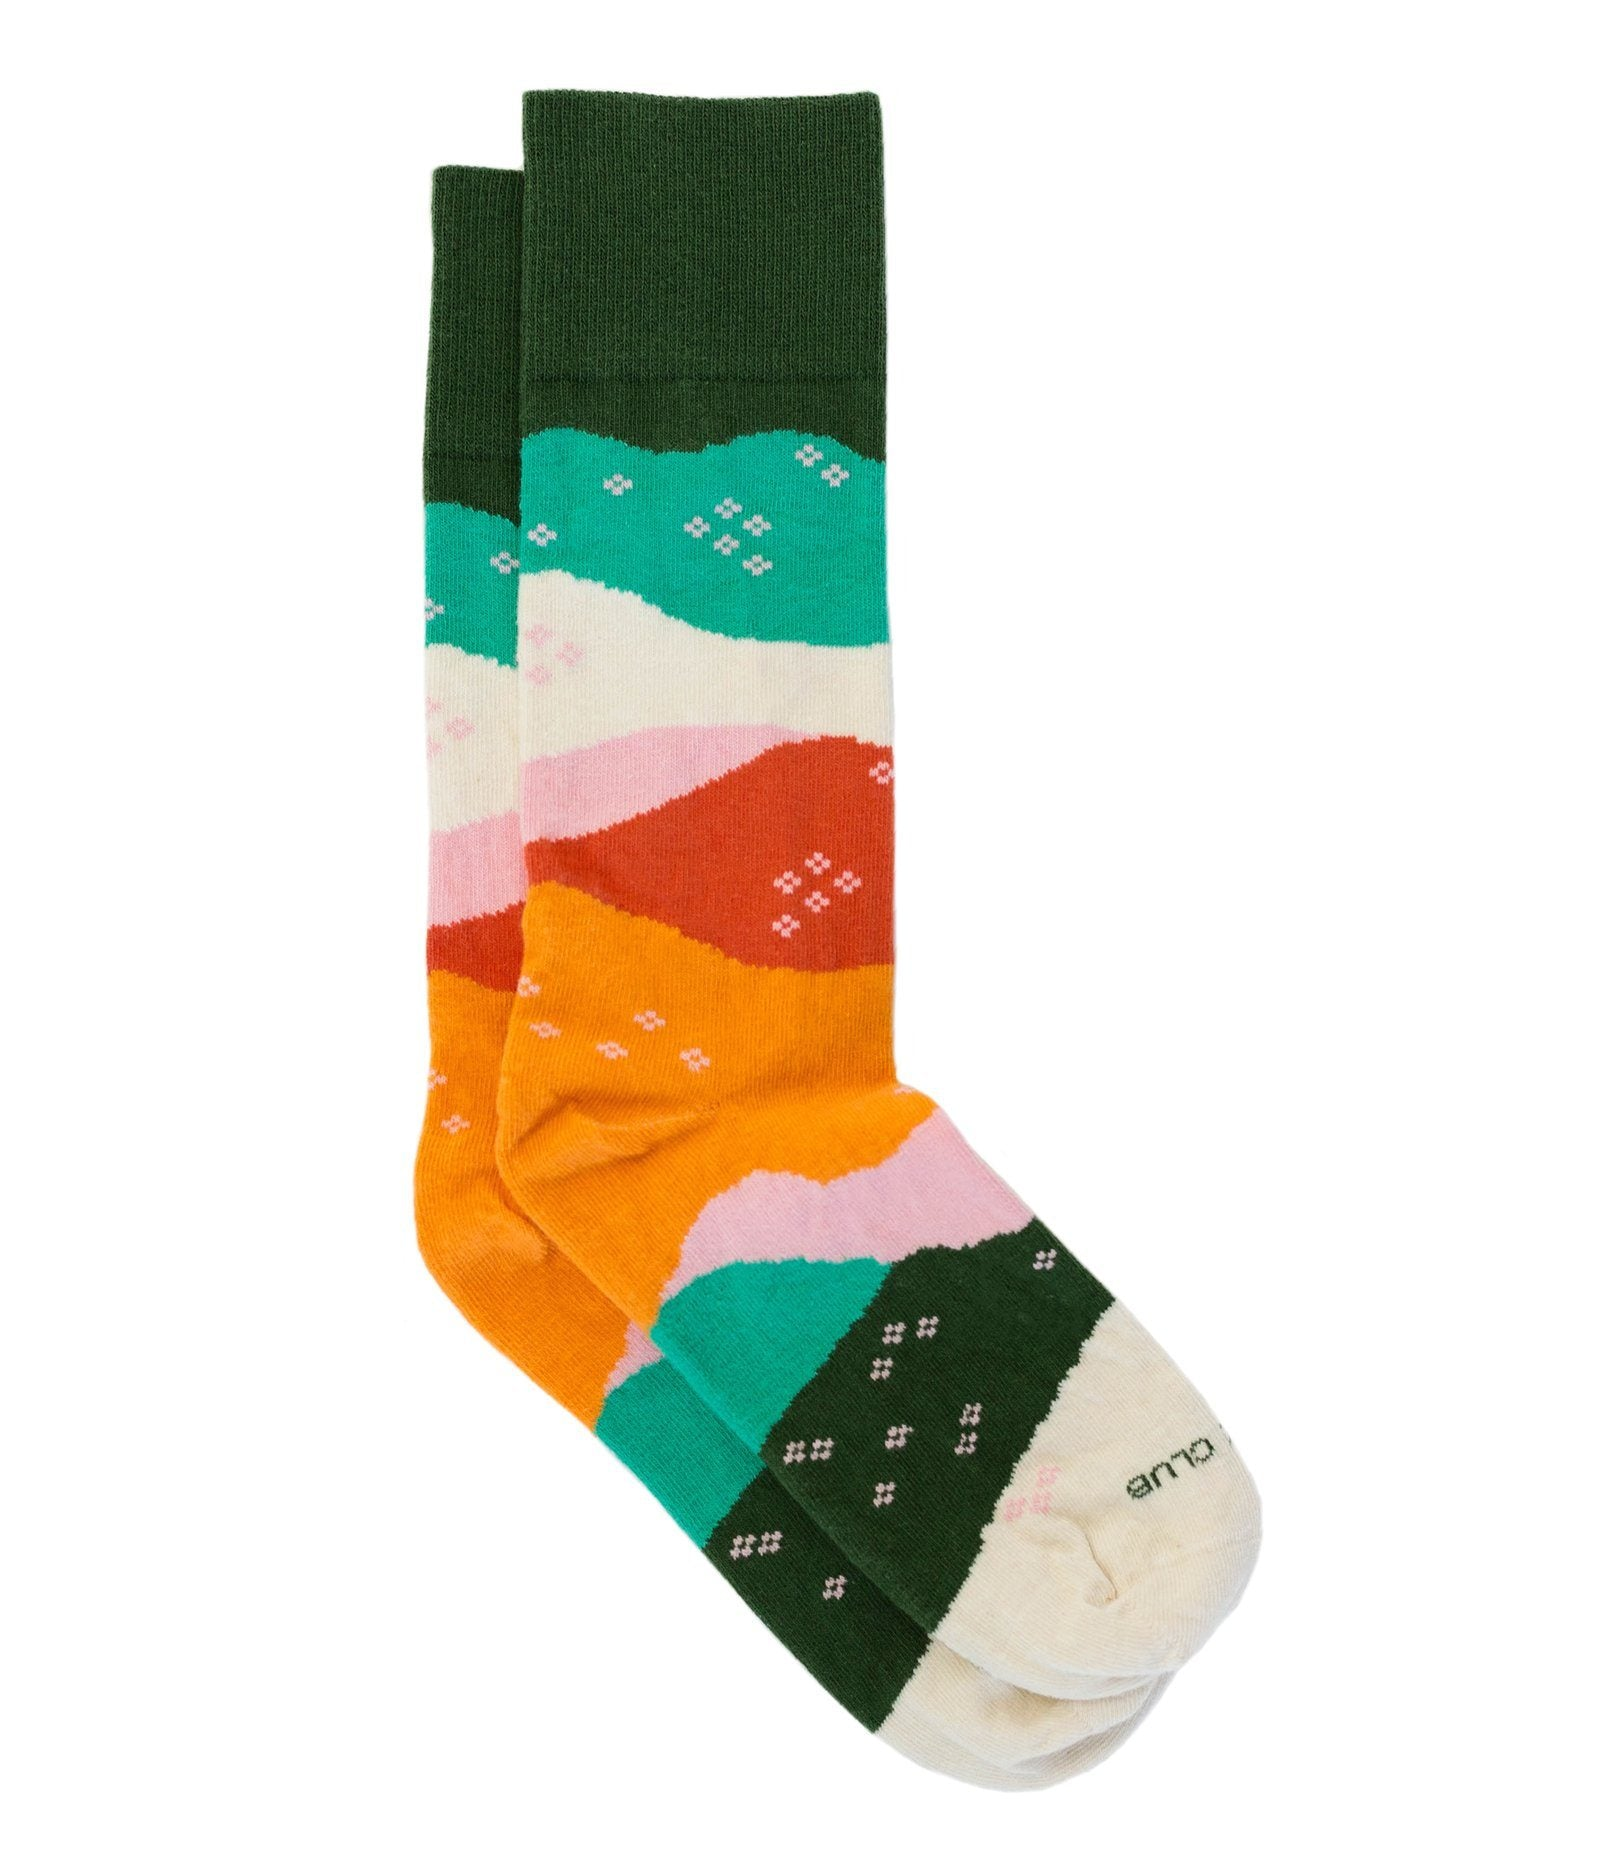 The Vista - Clementine - Sock Club Store